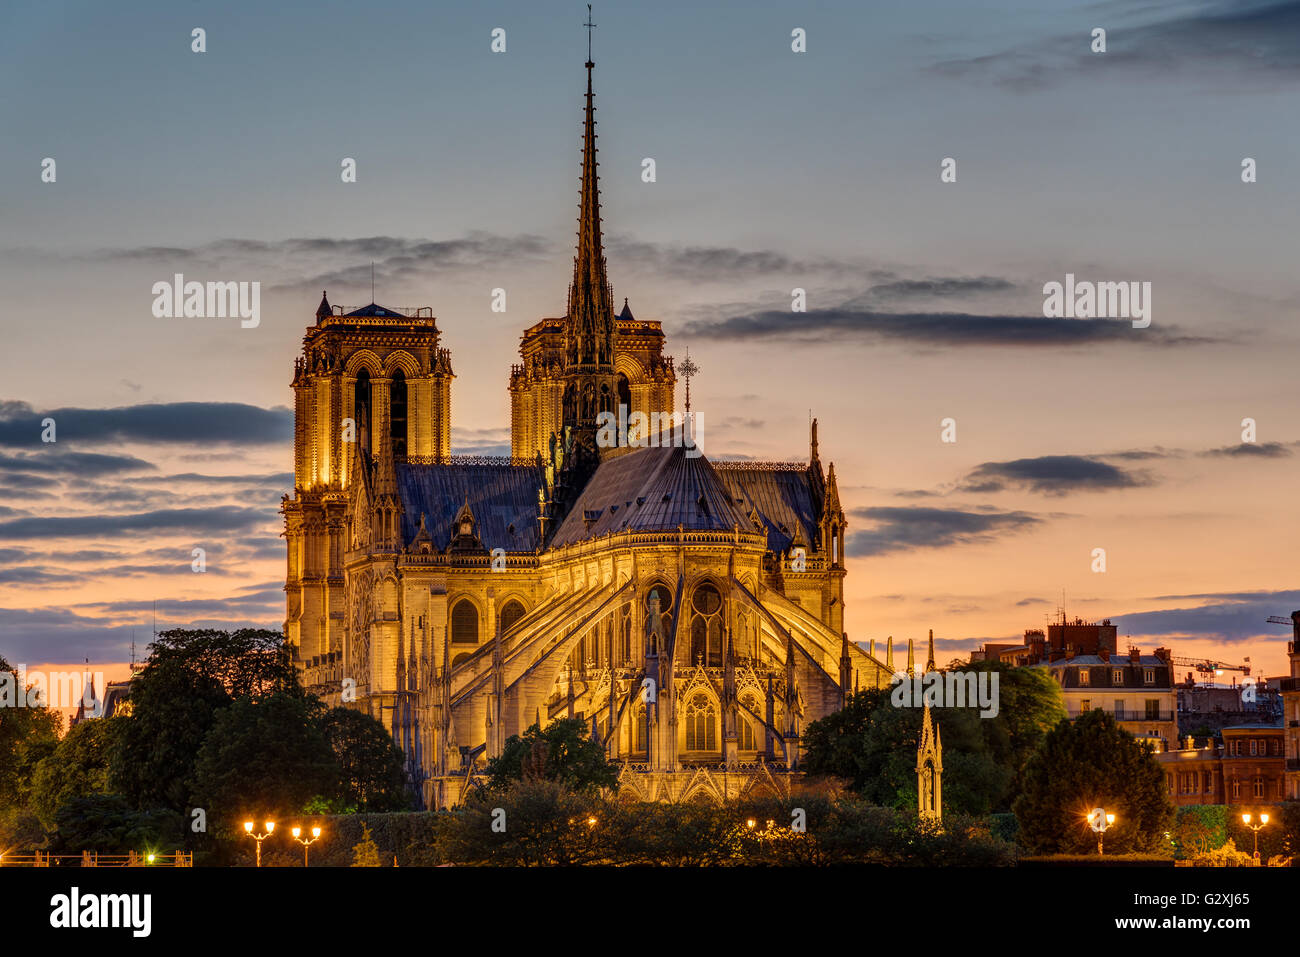 The backside of the famous Notre Dame cathedral in Paris at dawn - Stock Image